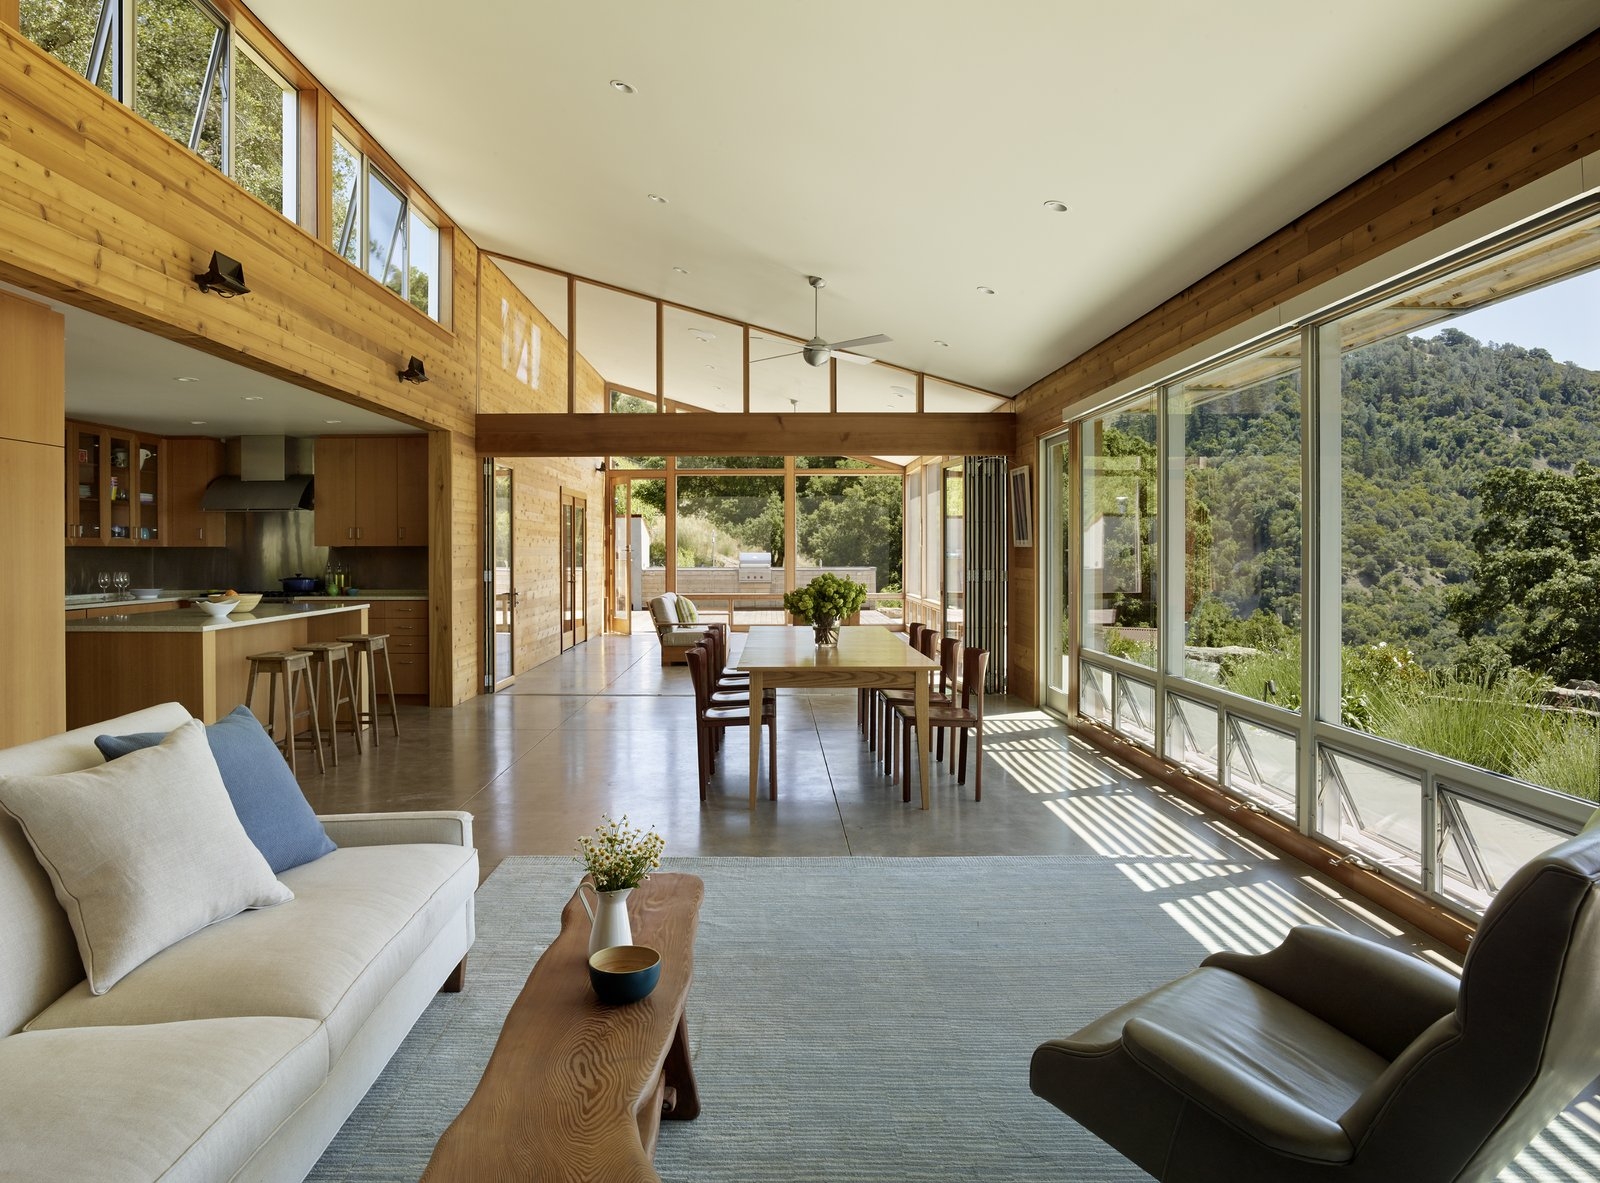 #TurnbullGriffinHaesloop #interior #nanawall #livingroom #diningroom #screenedporch #window Tagged: Living Room, Sofa, Chair, Table, Recessed Lighting, and Concrete Floor.  Cloverdale Residence by Turnbull Griffin Haesloop Architects